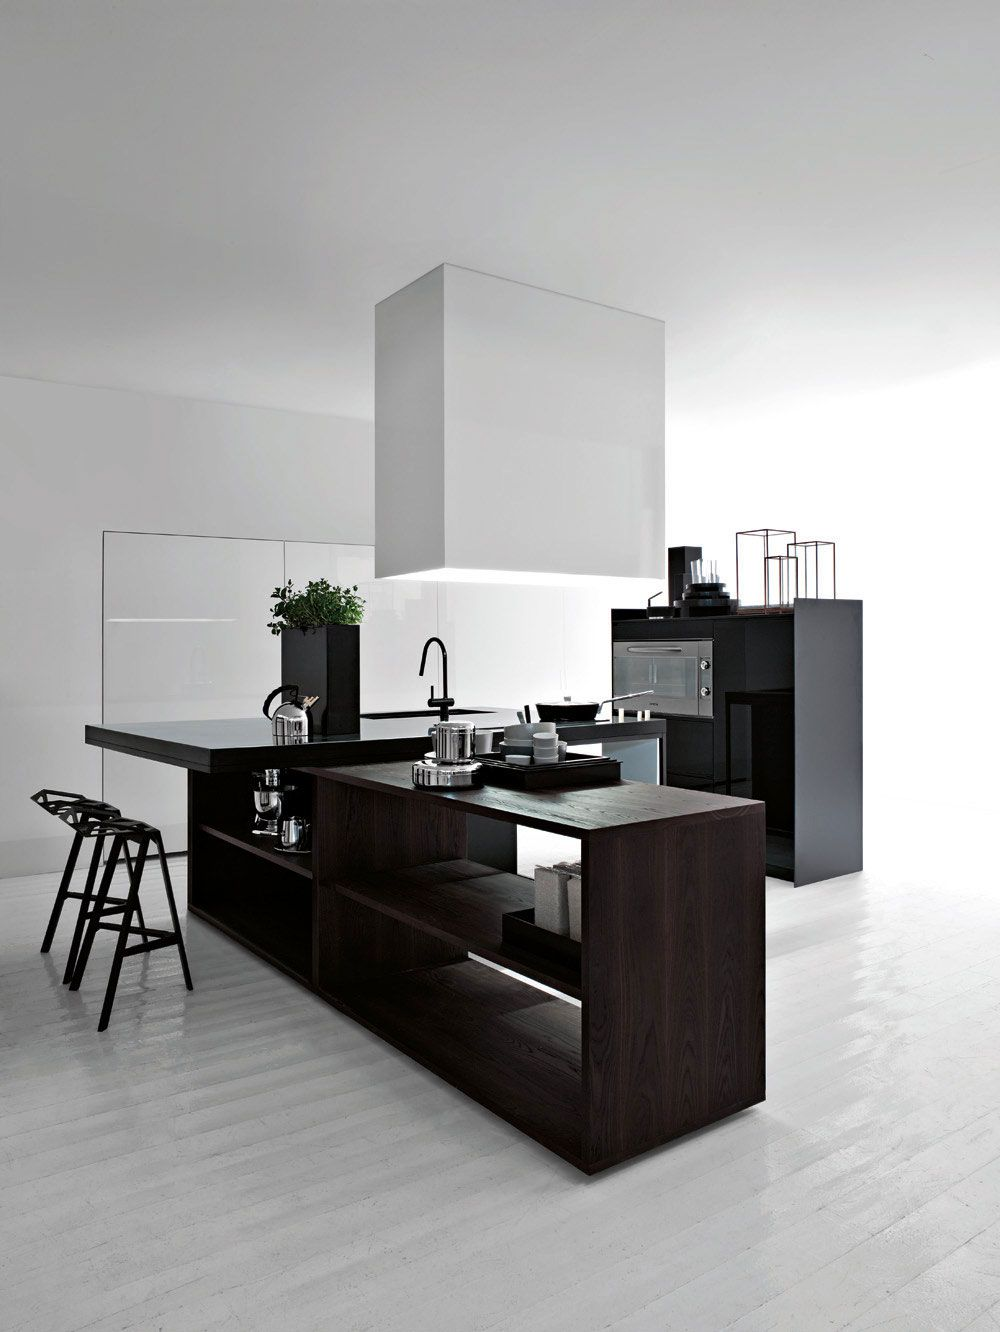 Black And White Minimalist Kitchen Island Contemporary Kitchen Design Modern Kitchen Design Contemporary Kitchen